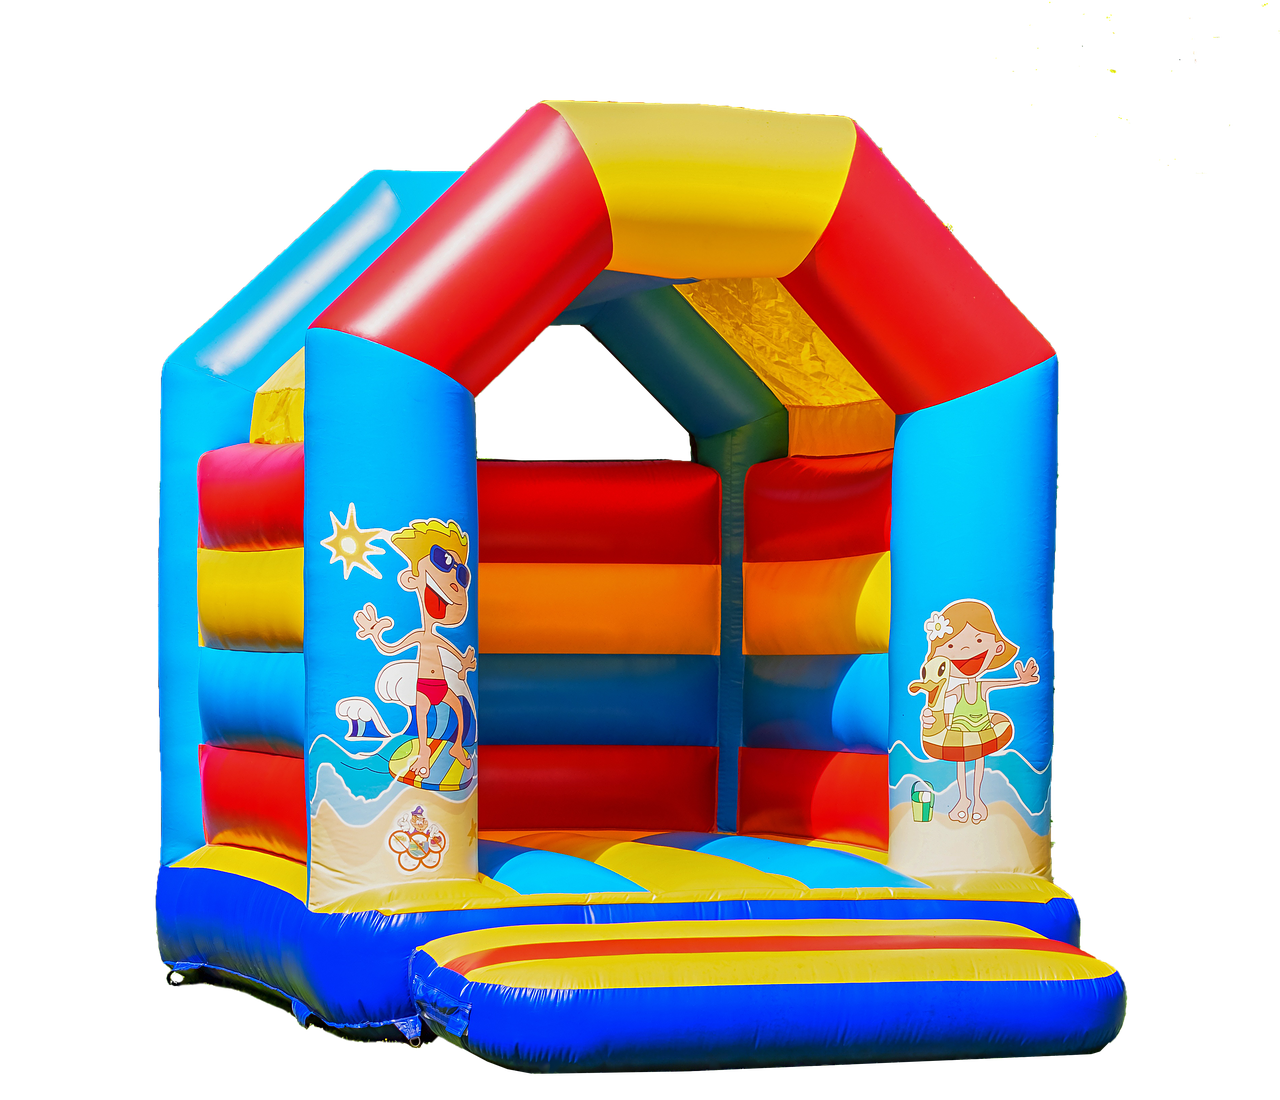 bouncy castle  isolated  children toys free photo